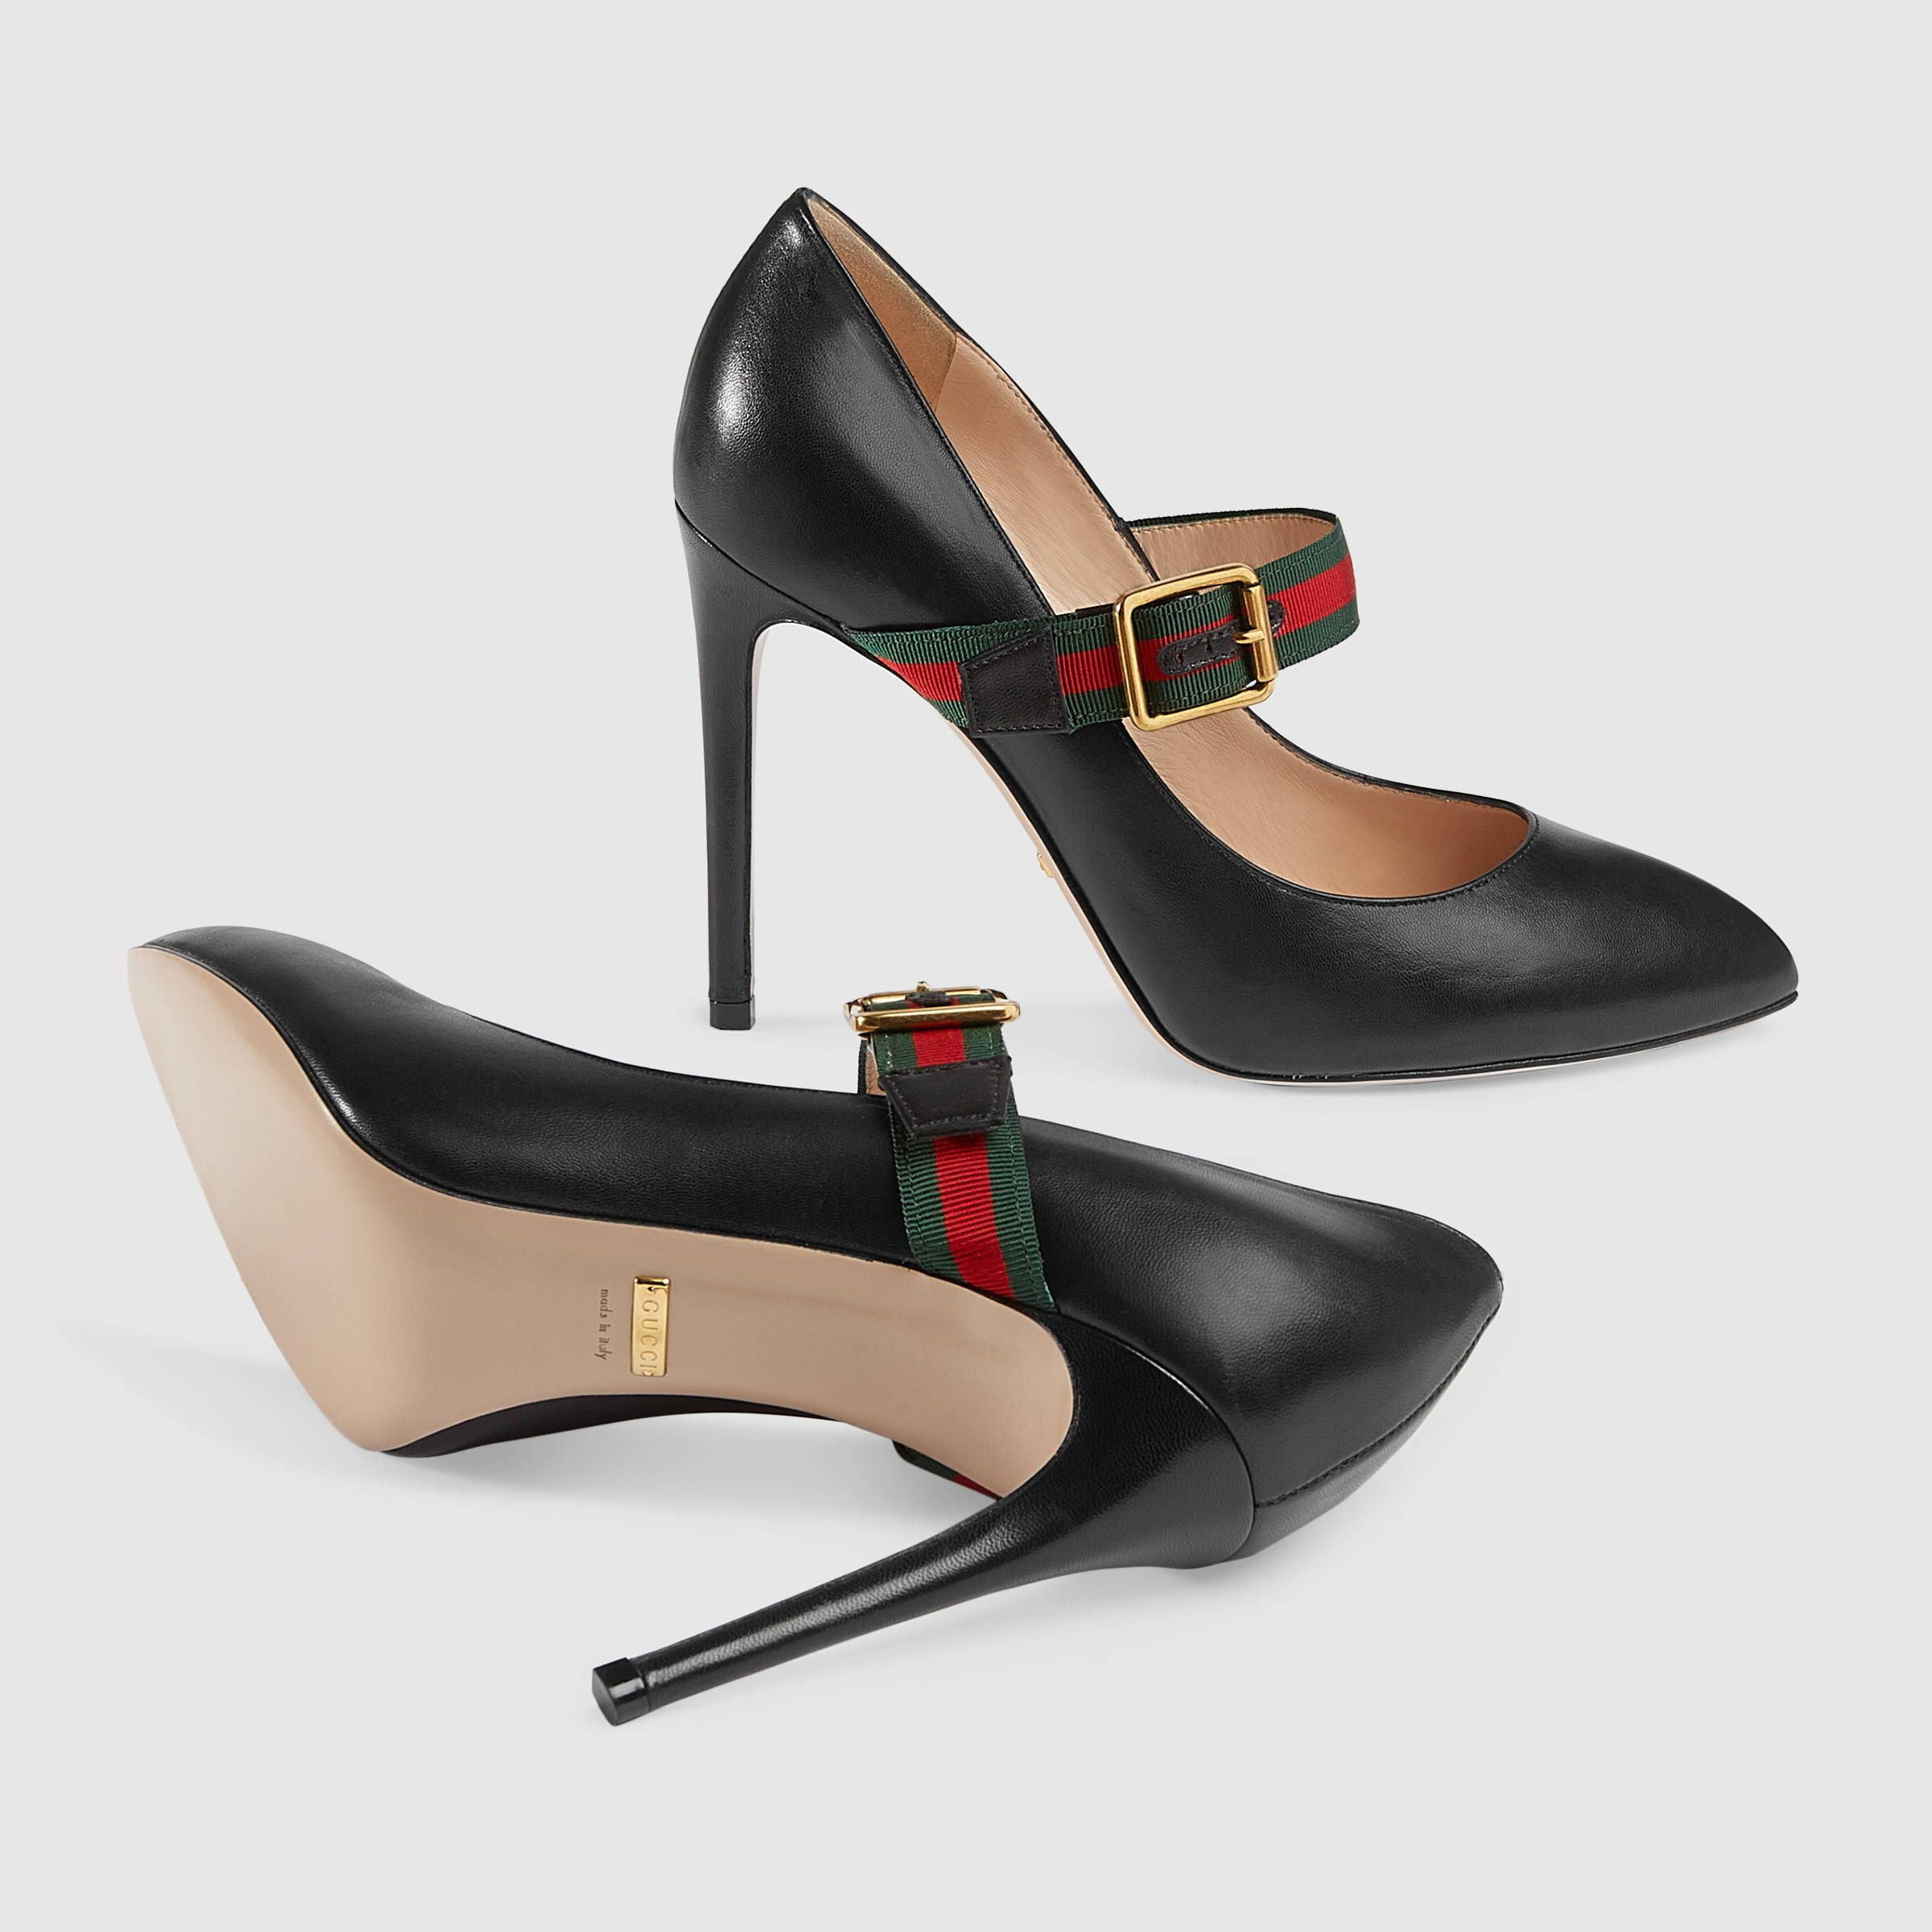 af72c0895f6 Gucci Sylvie leather pump Detail 5